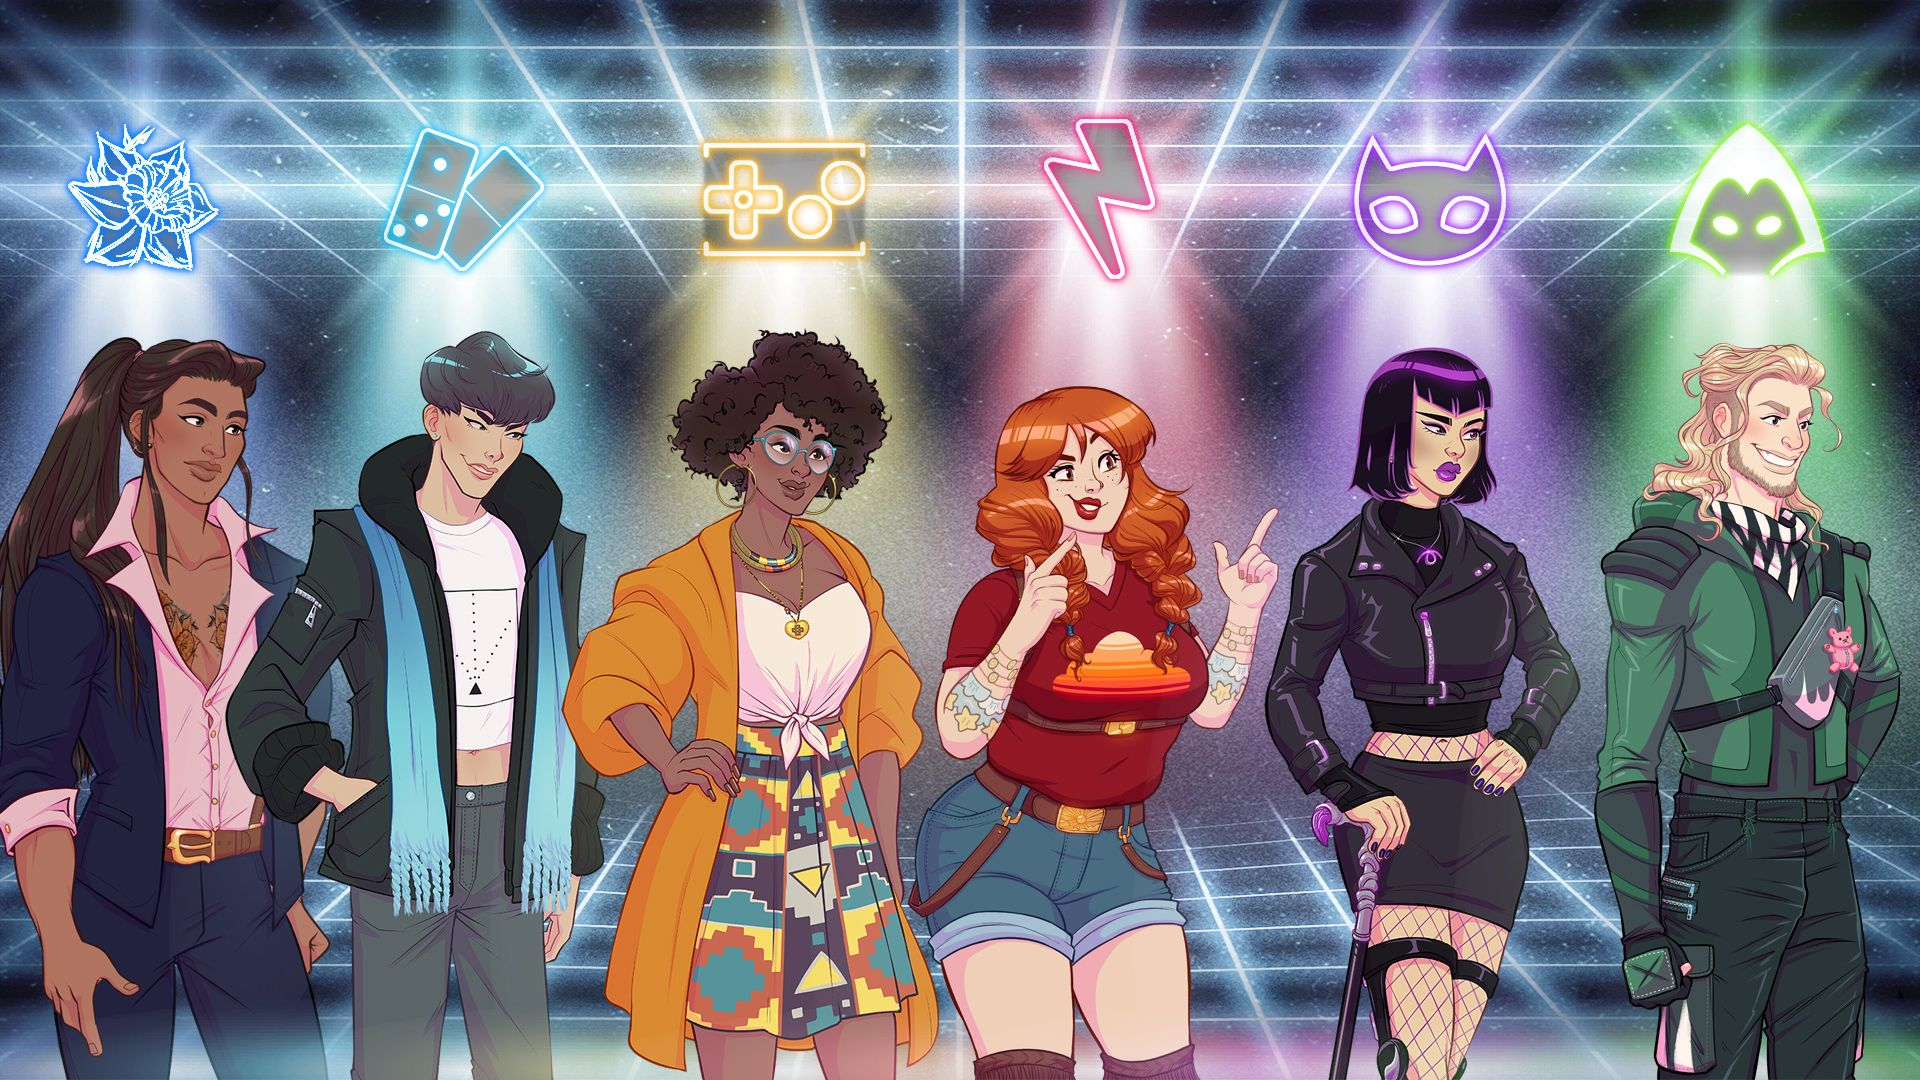 The cast of Arcade Spirits: The New Challengers